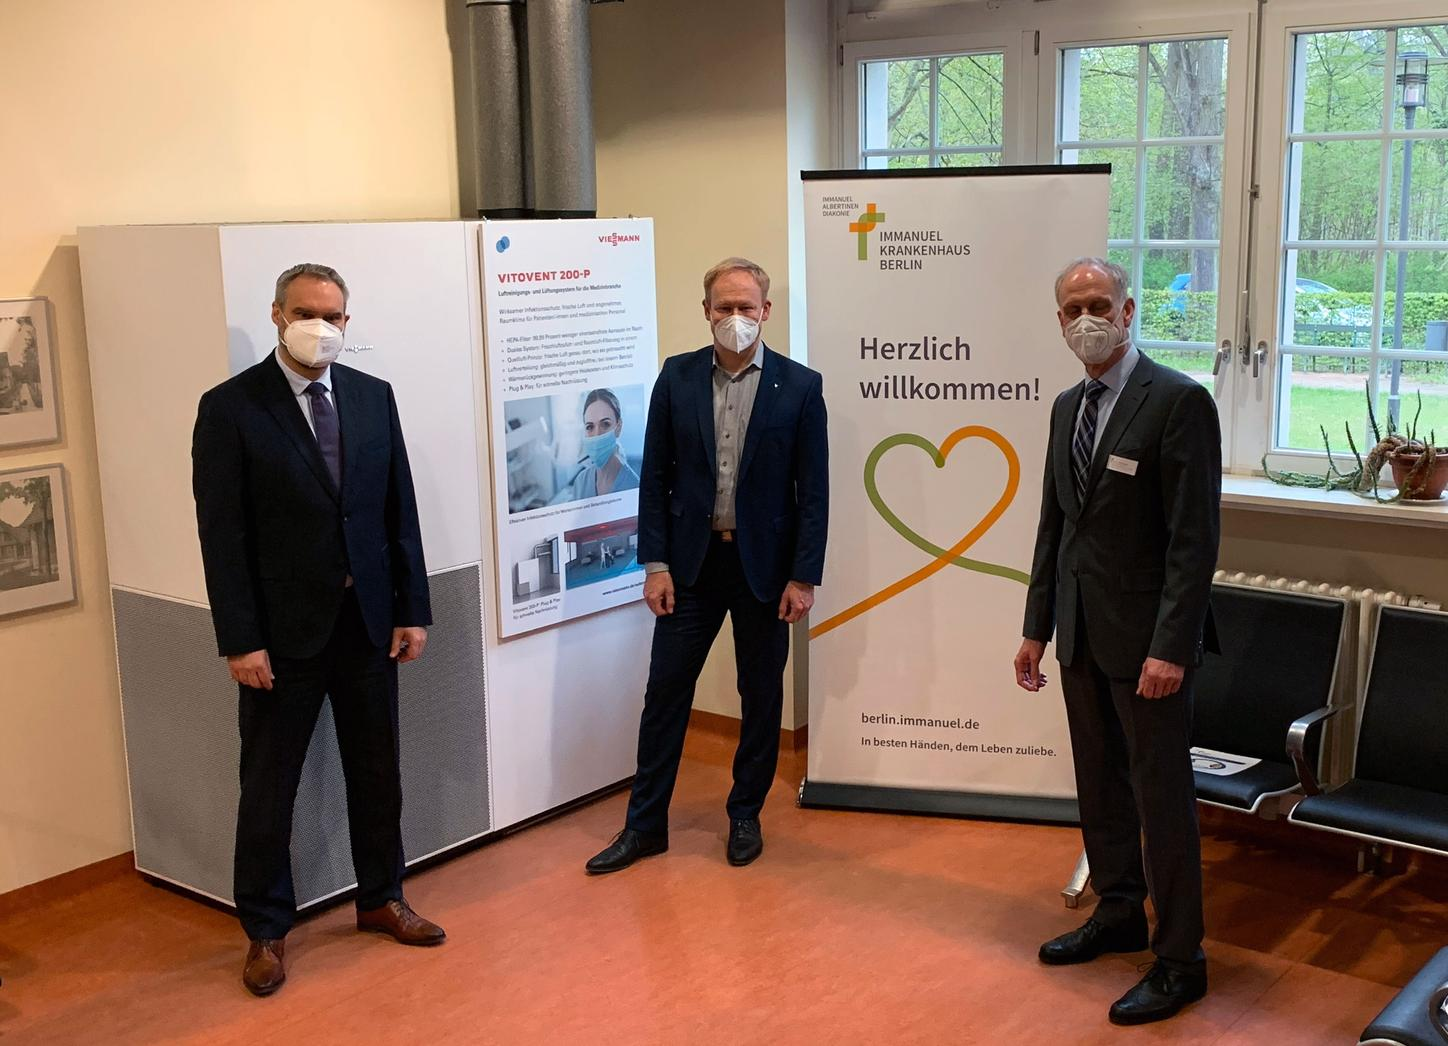 The image shows Roy J. Noack, Managing Director Immanuel Krankenhaus Berlin, Martin Rossmann, Project Manager Vitovent Viessmann, Prof. Dr. Andreas Krause, Chief Physician of the Department of Rheumatology Immanuel Krankenhaus Berlin.